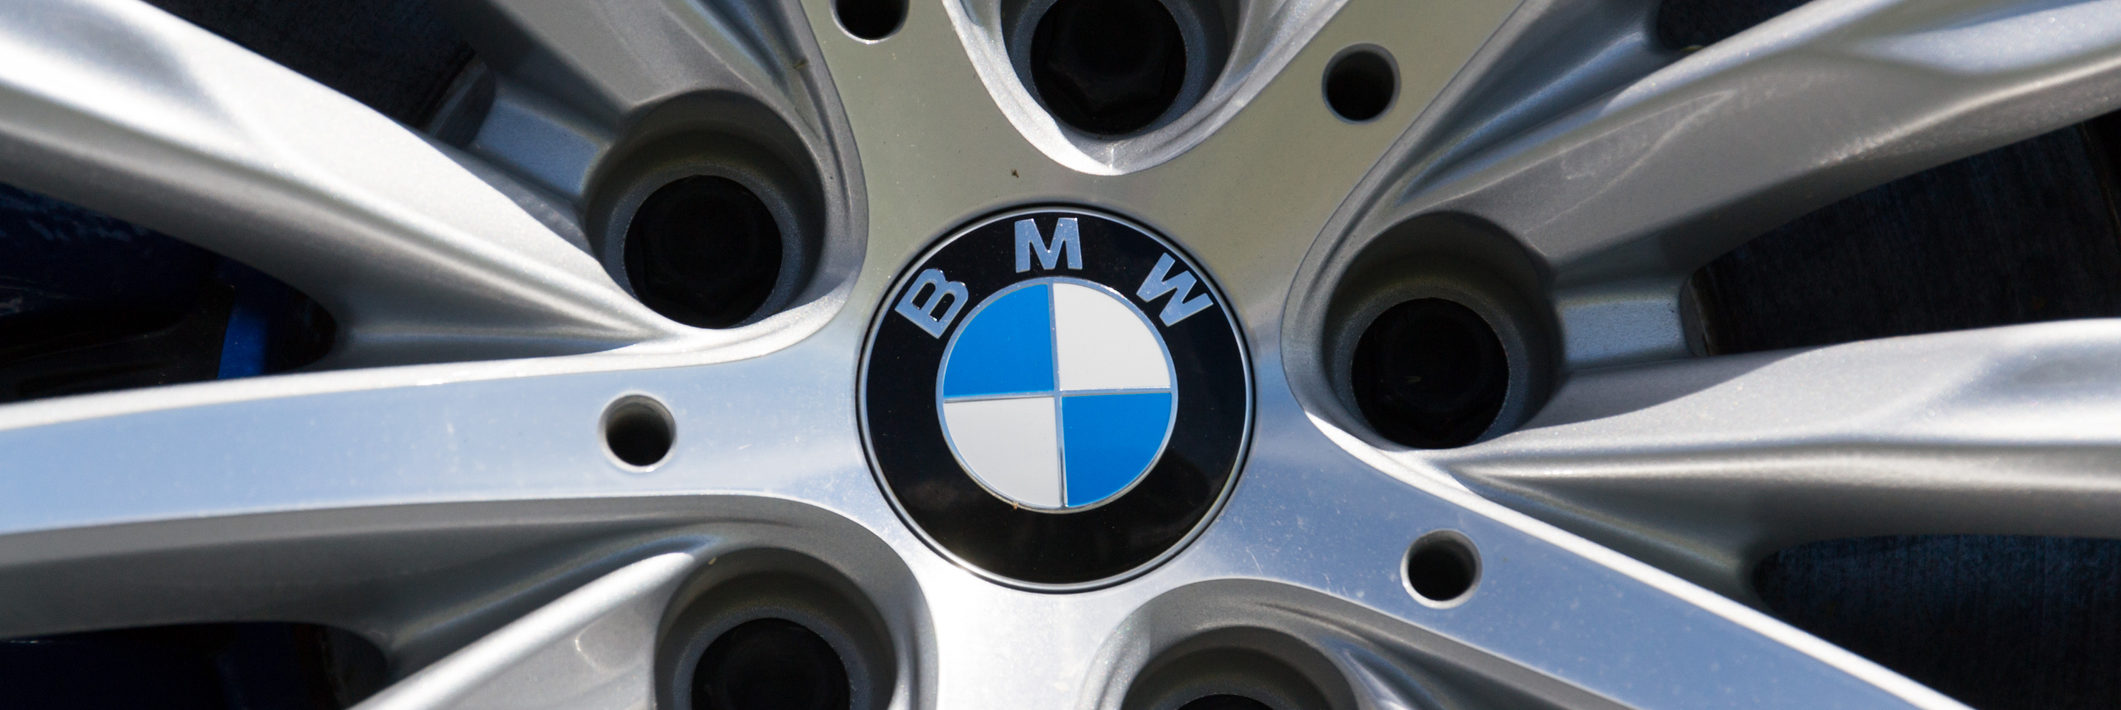 BMW logo on a 530d XDrive Limousine wheel